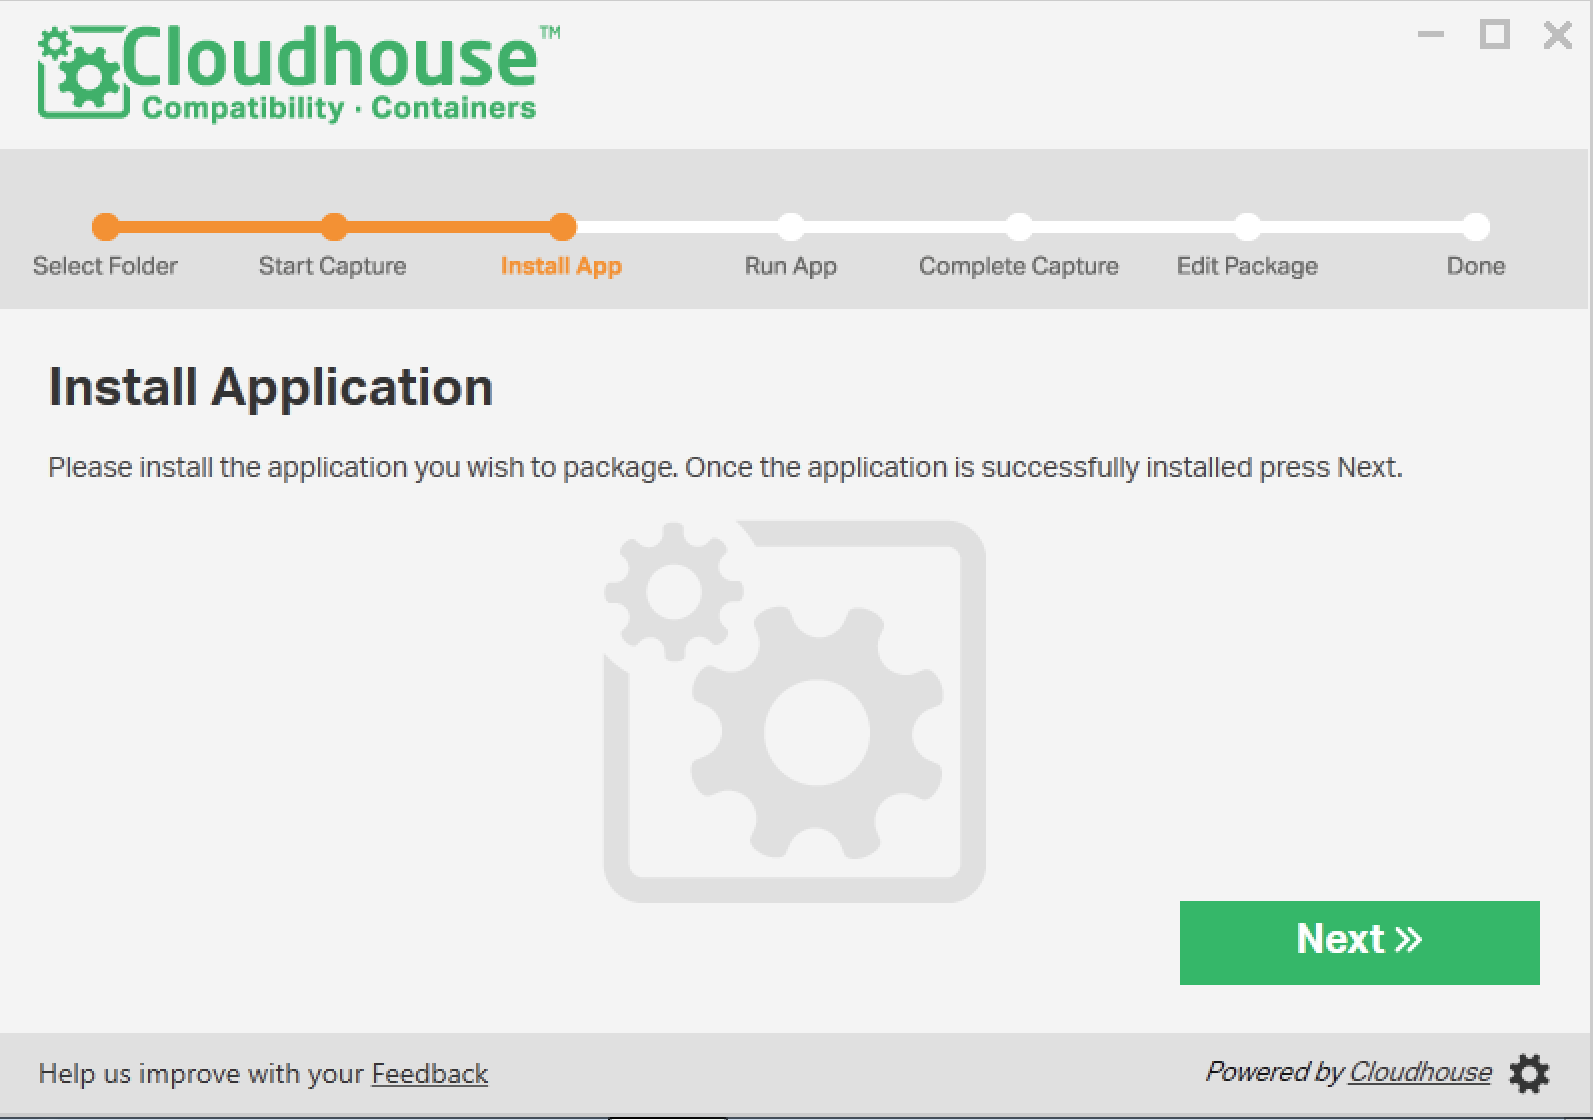 Cloudhouse Compatibility Containers – WilkyIT – End User